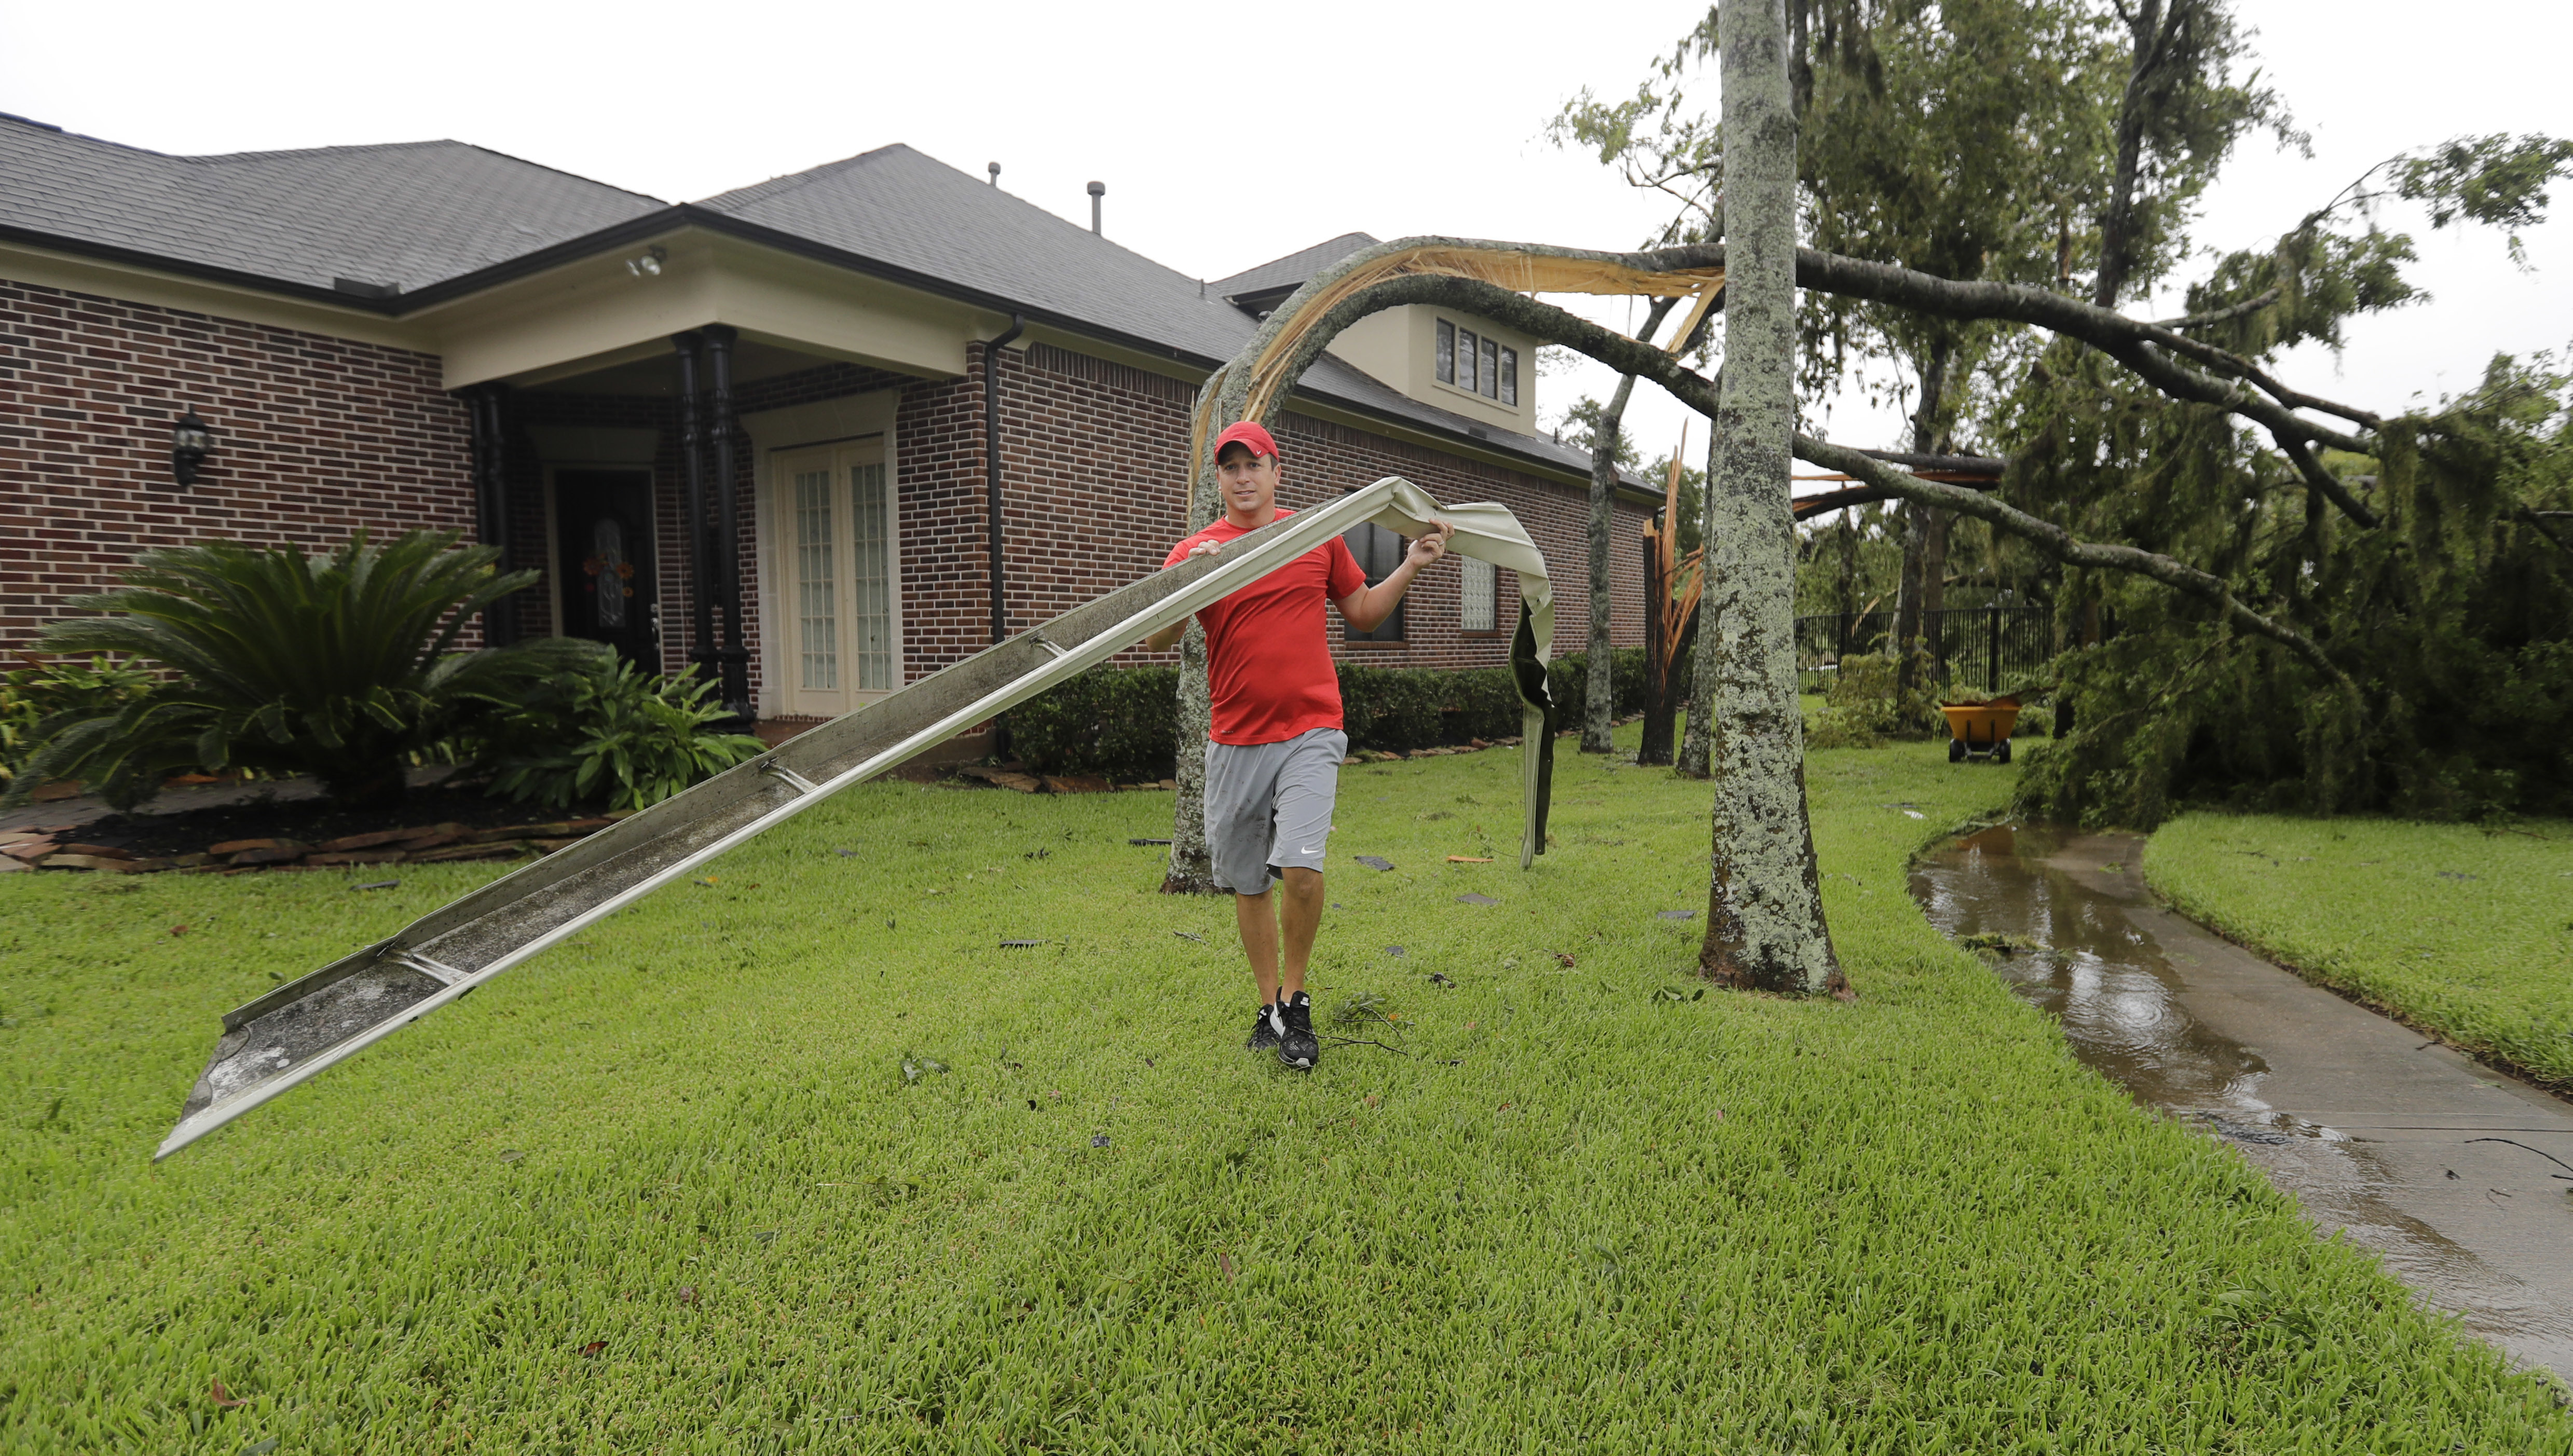 Making sure gutters and downspouts are clear is one step that can prevent damage during a severe weather event. This resident's property in Missouri City, Texas sustained damage during Hurricane Harvey. (AP Photo/David J. Phillip)